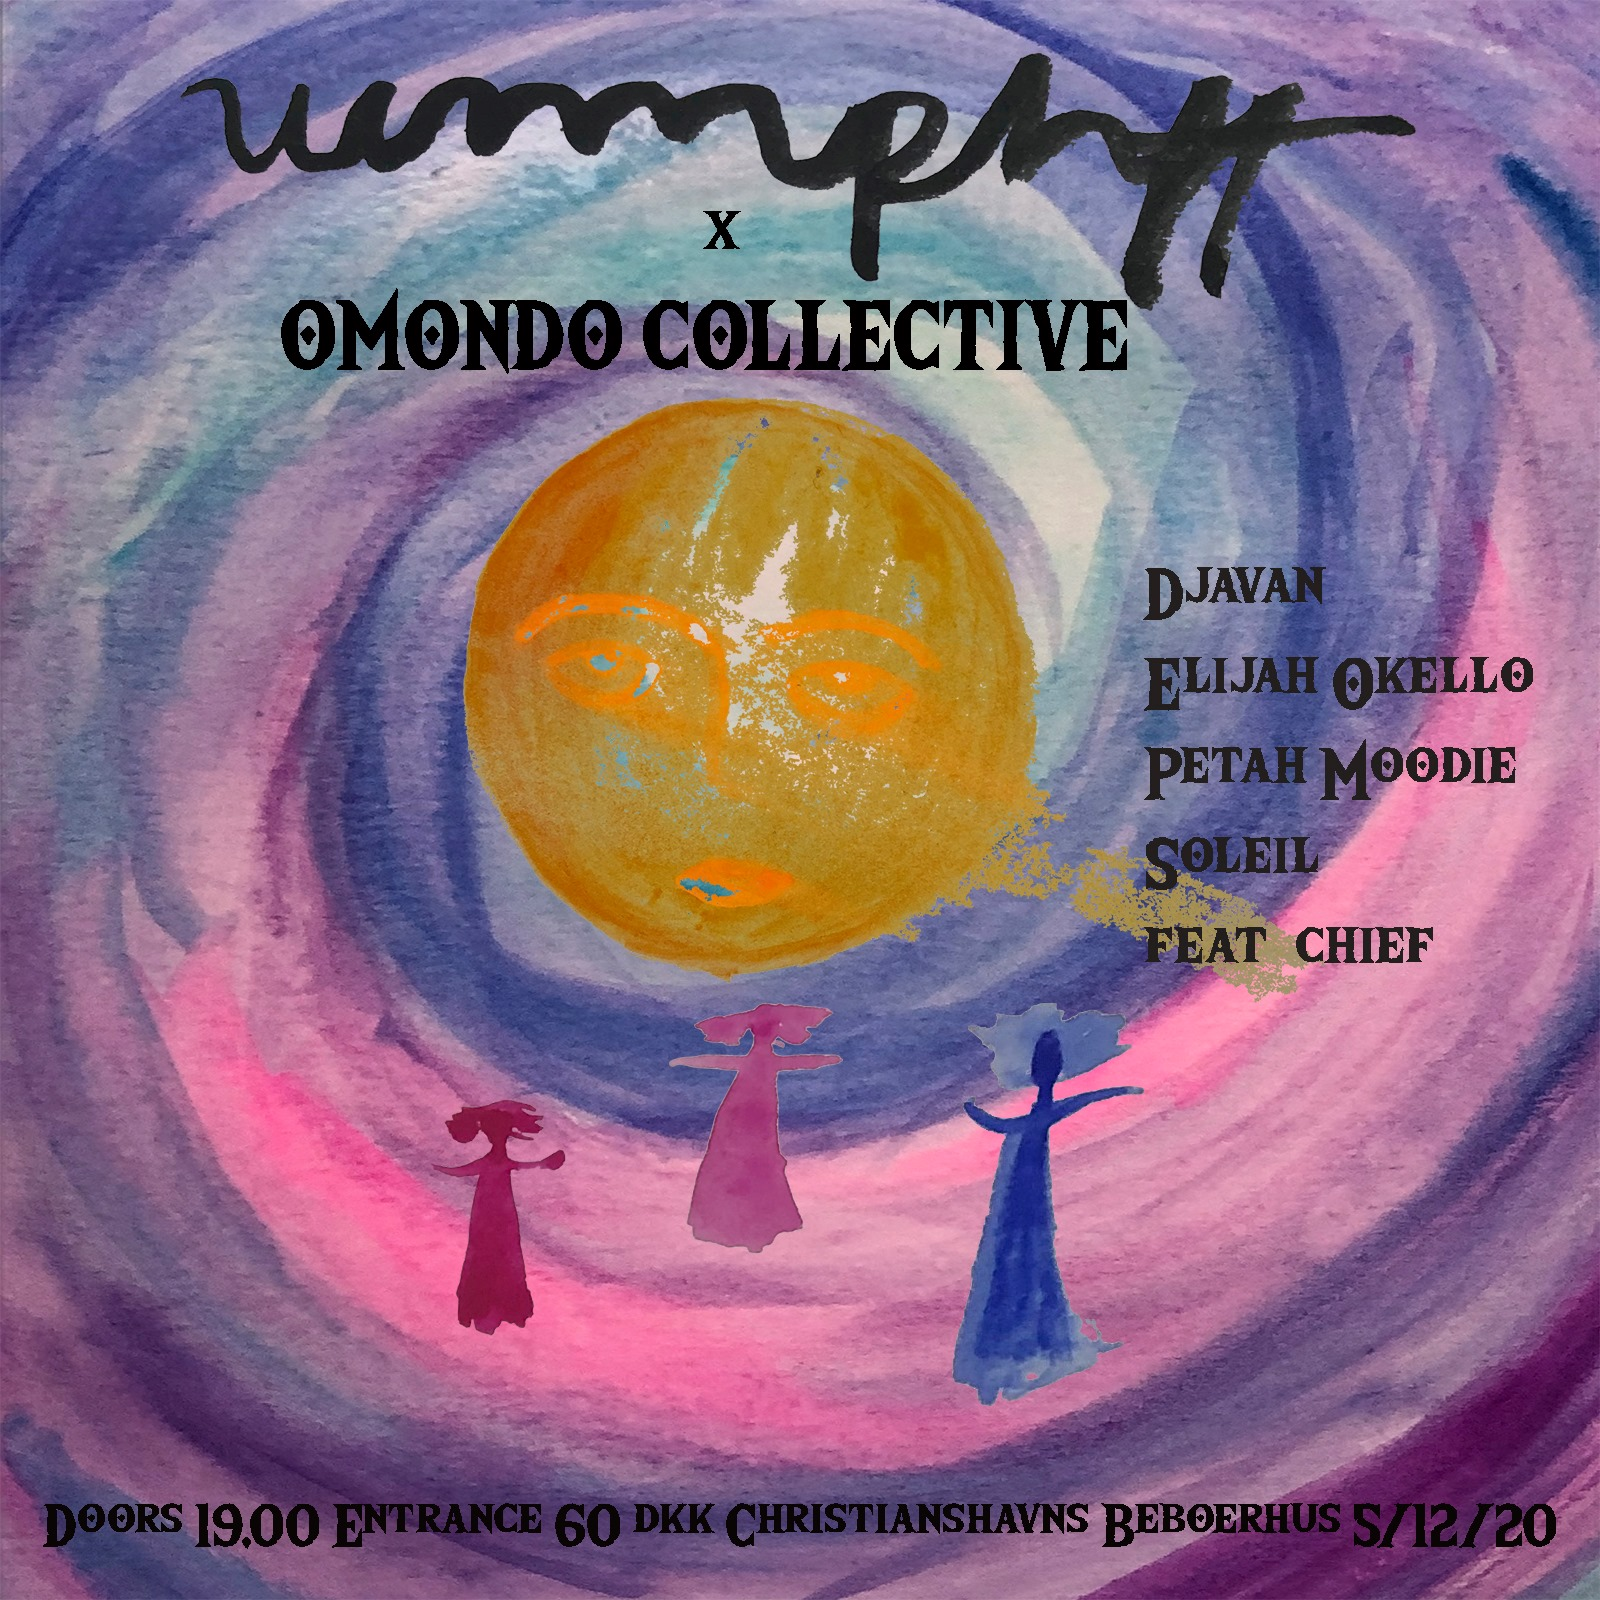 UUMPHFF – OMONDO COLLECTIVE